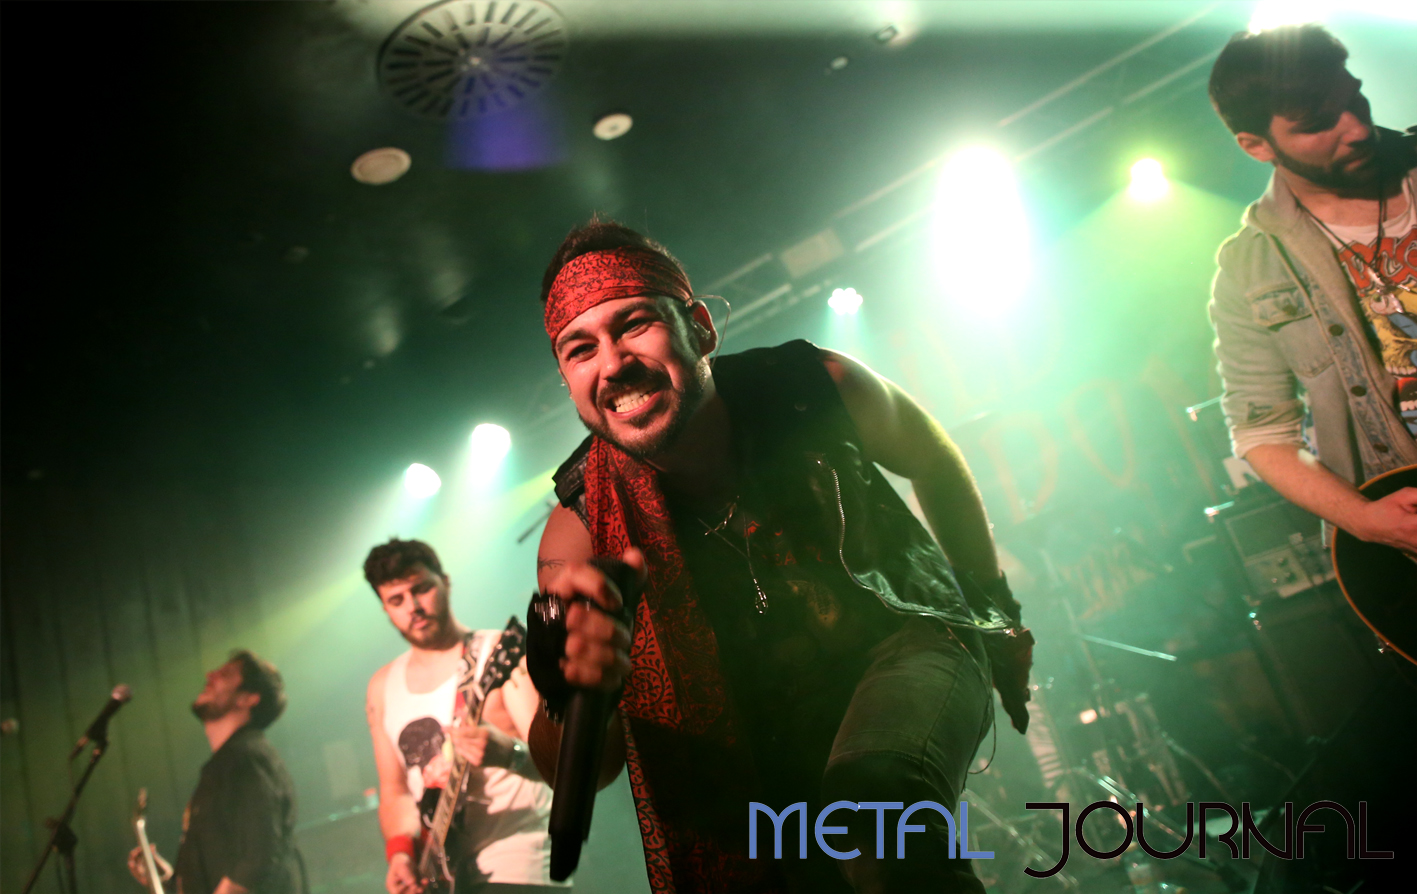 wild freedom - metal journal 2019 pic 2